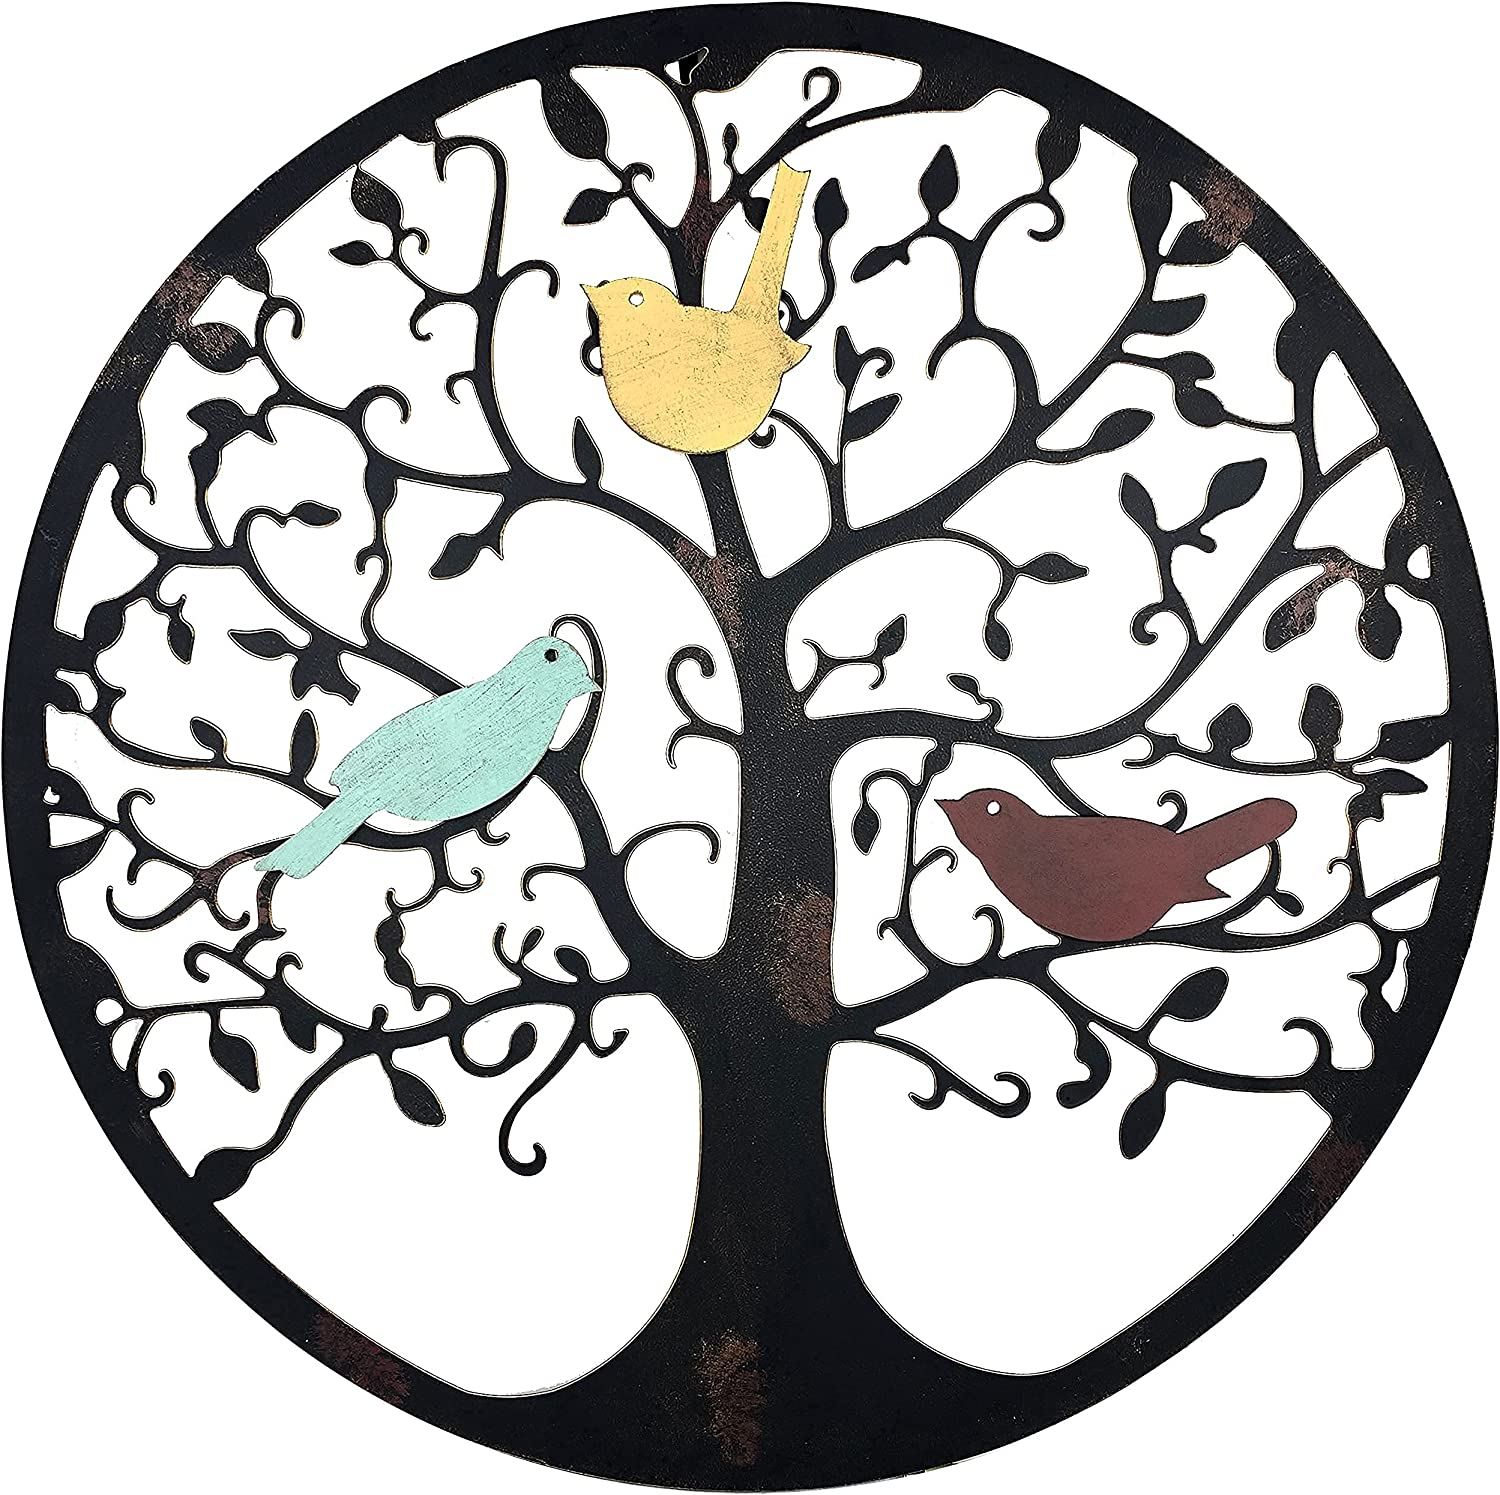 Metal Wall Art Tree of Outdoor 23inch Decor Life Large shop Sales SALE items from new works